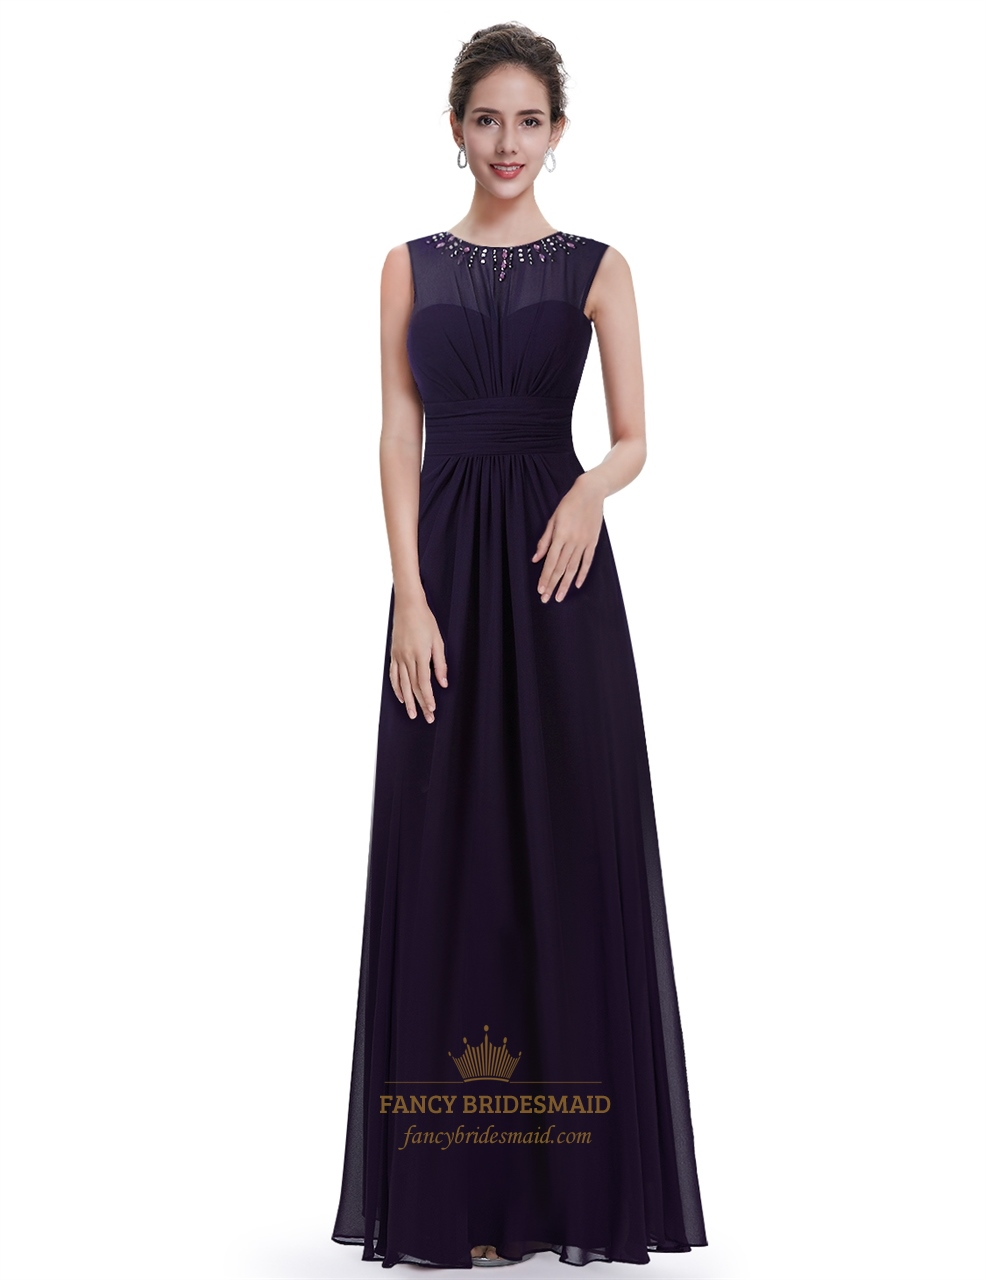 Dark Purple Chiffon Bridesmaid Dress With Beaded Illusion Neckline